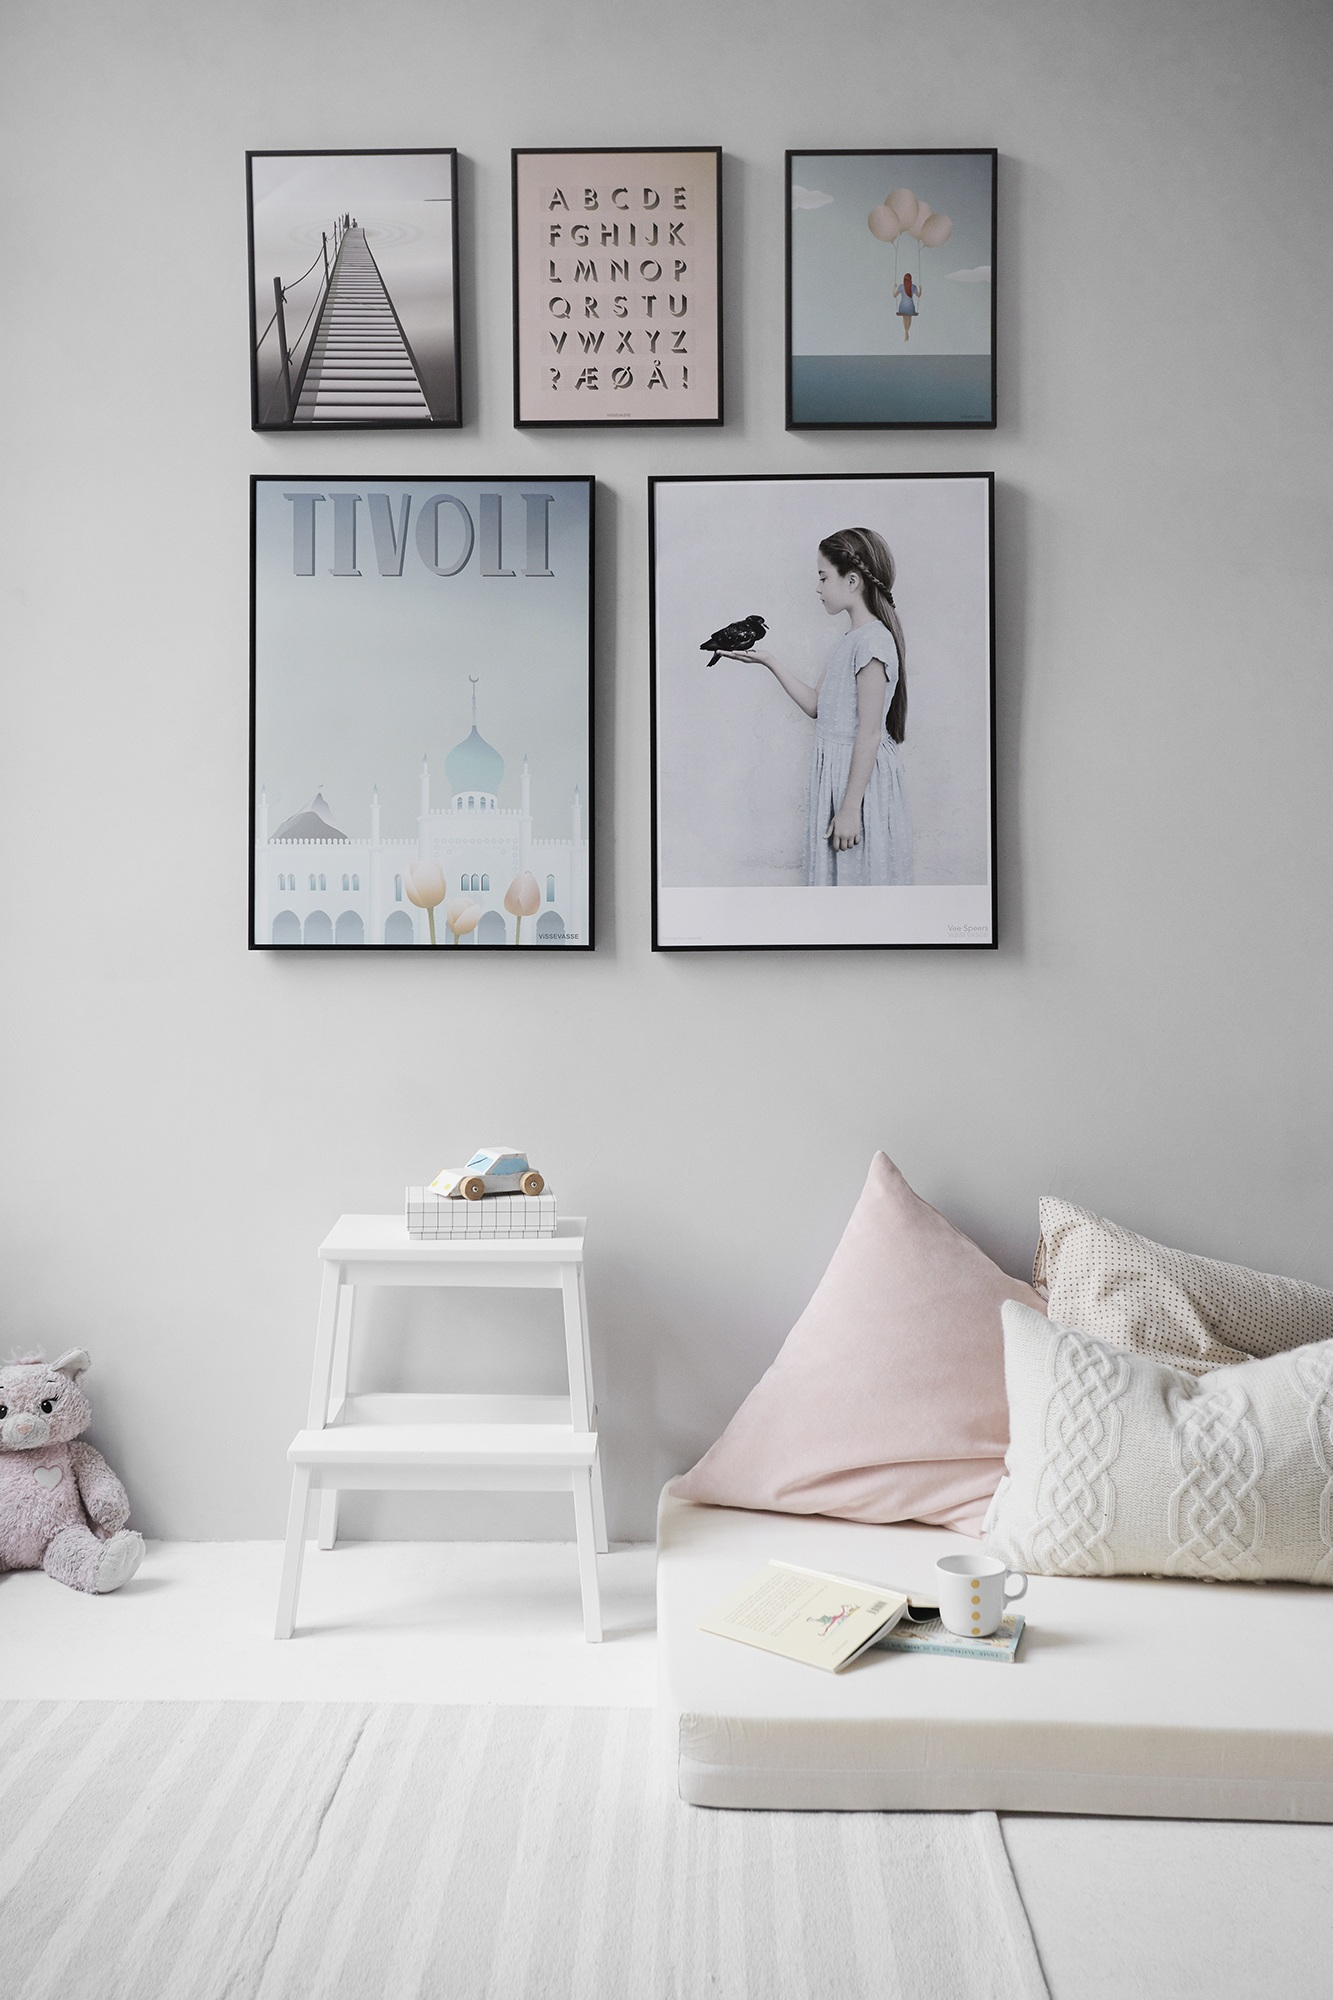 room home house wall pictures frames.jpeg